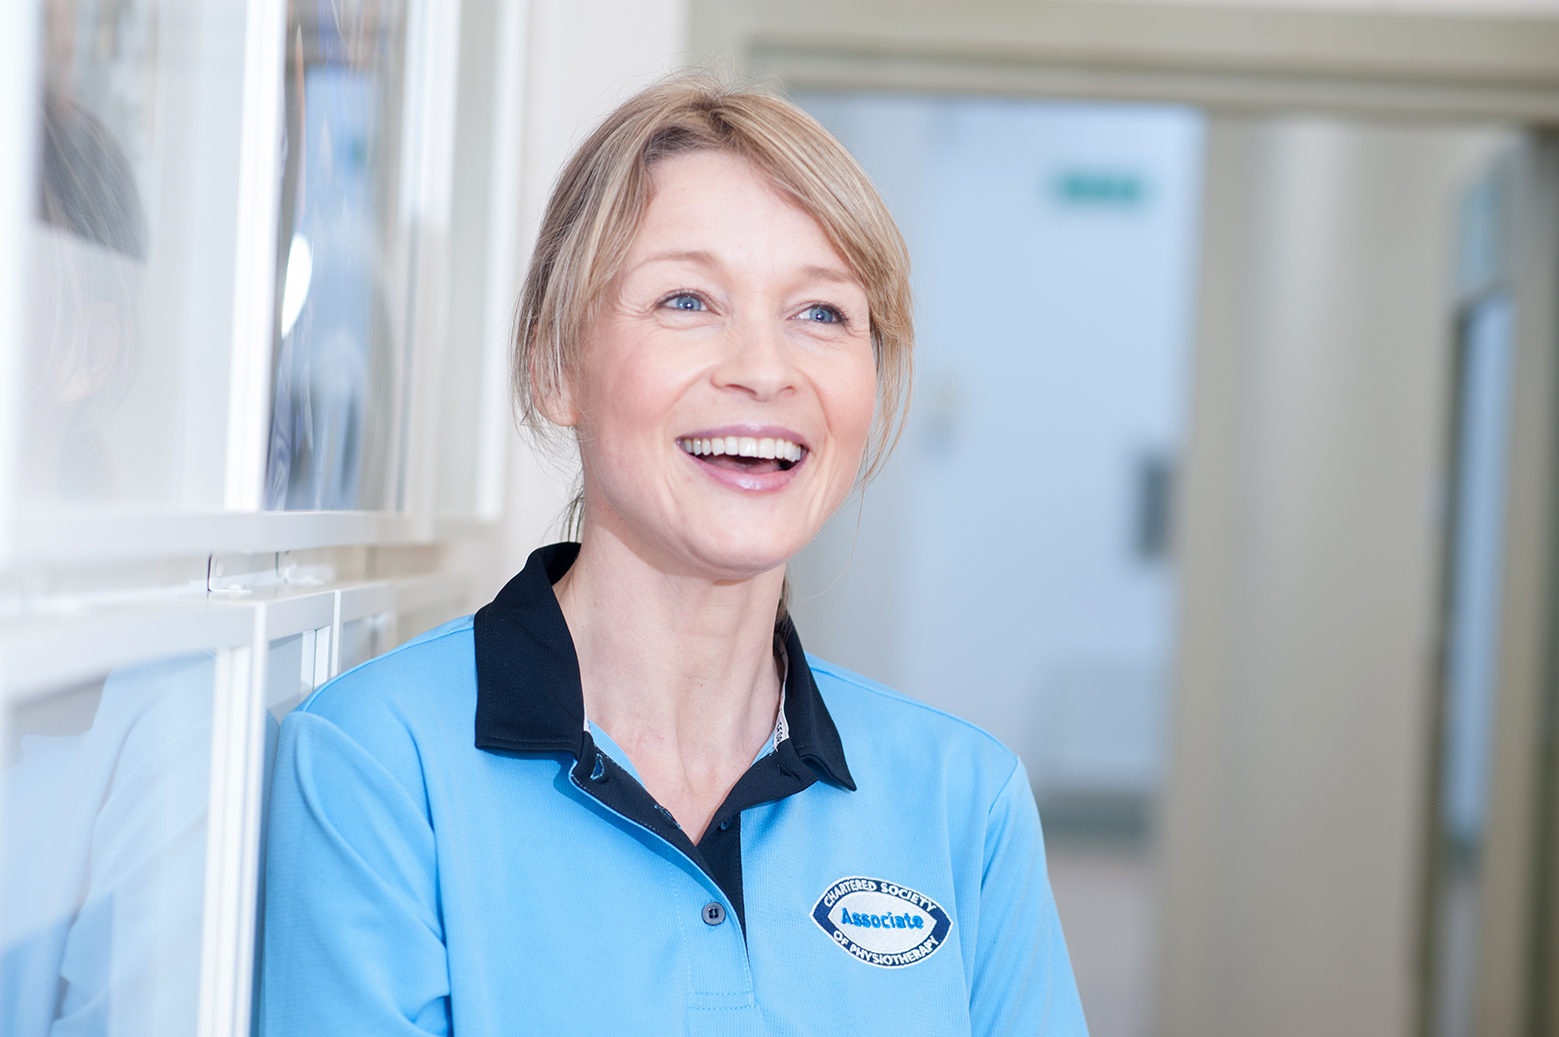 Headshot portrait of a women physiotherapist Laughing